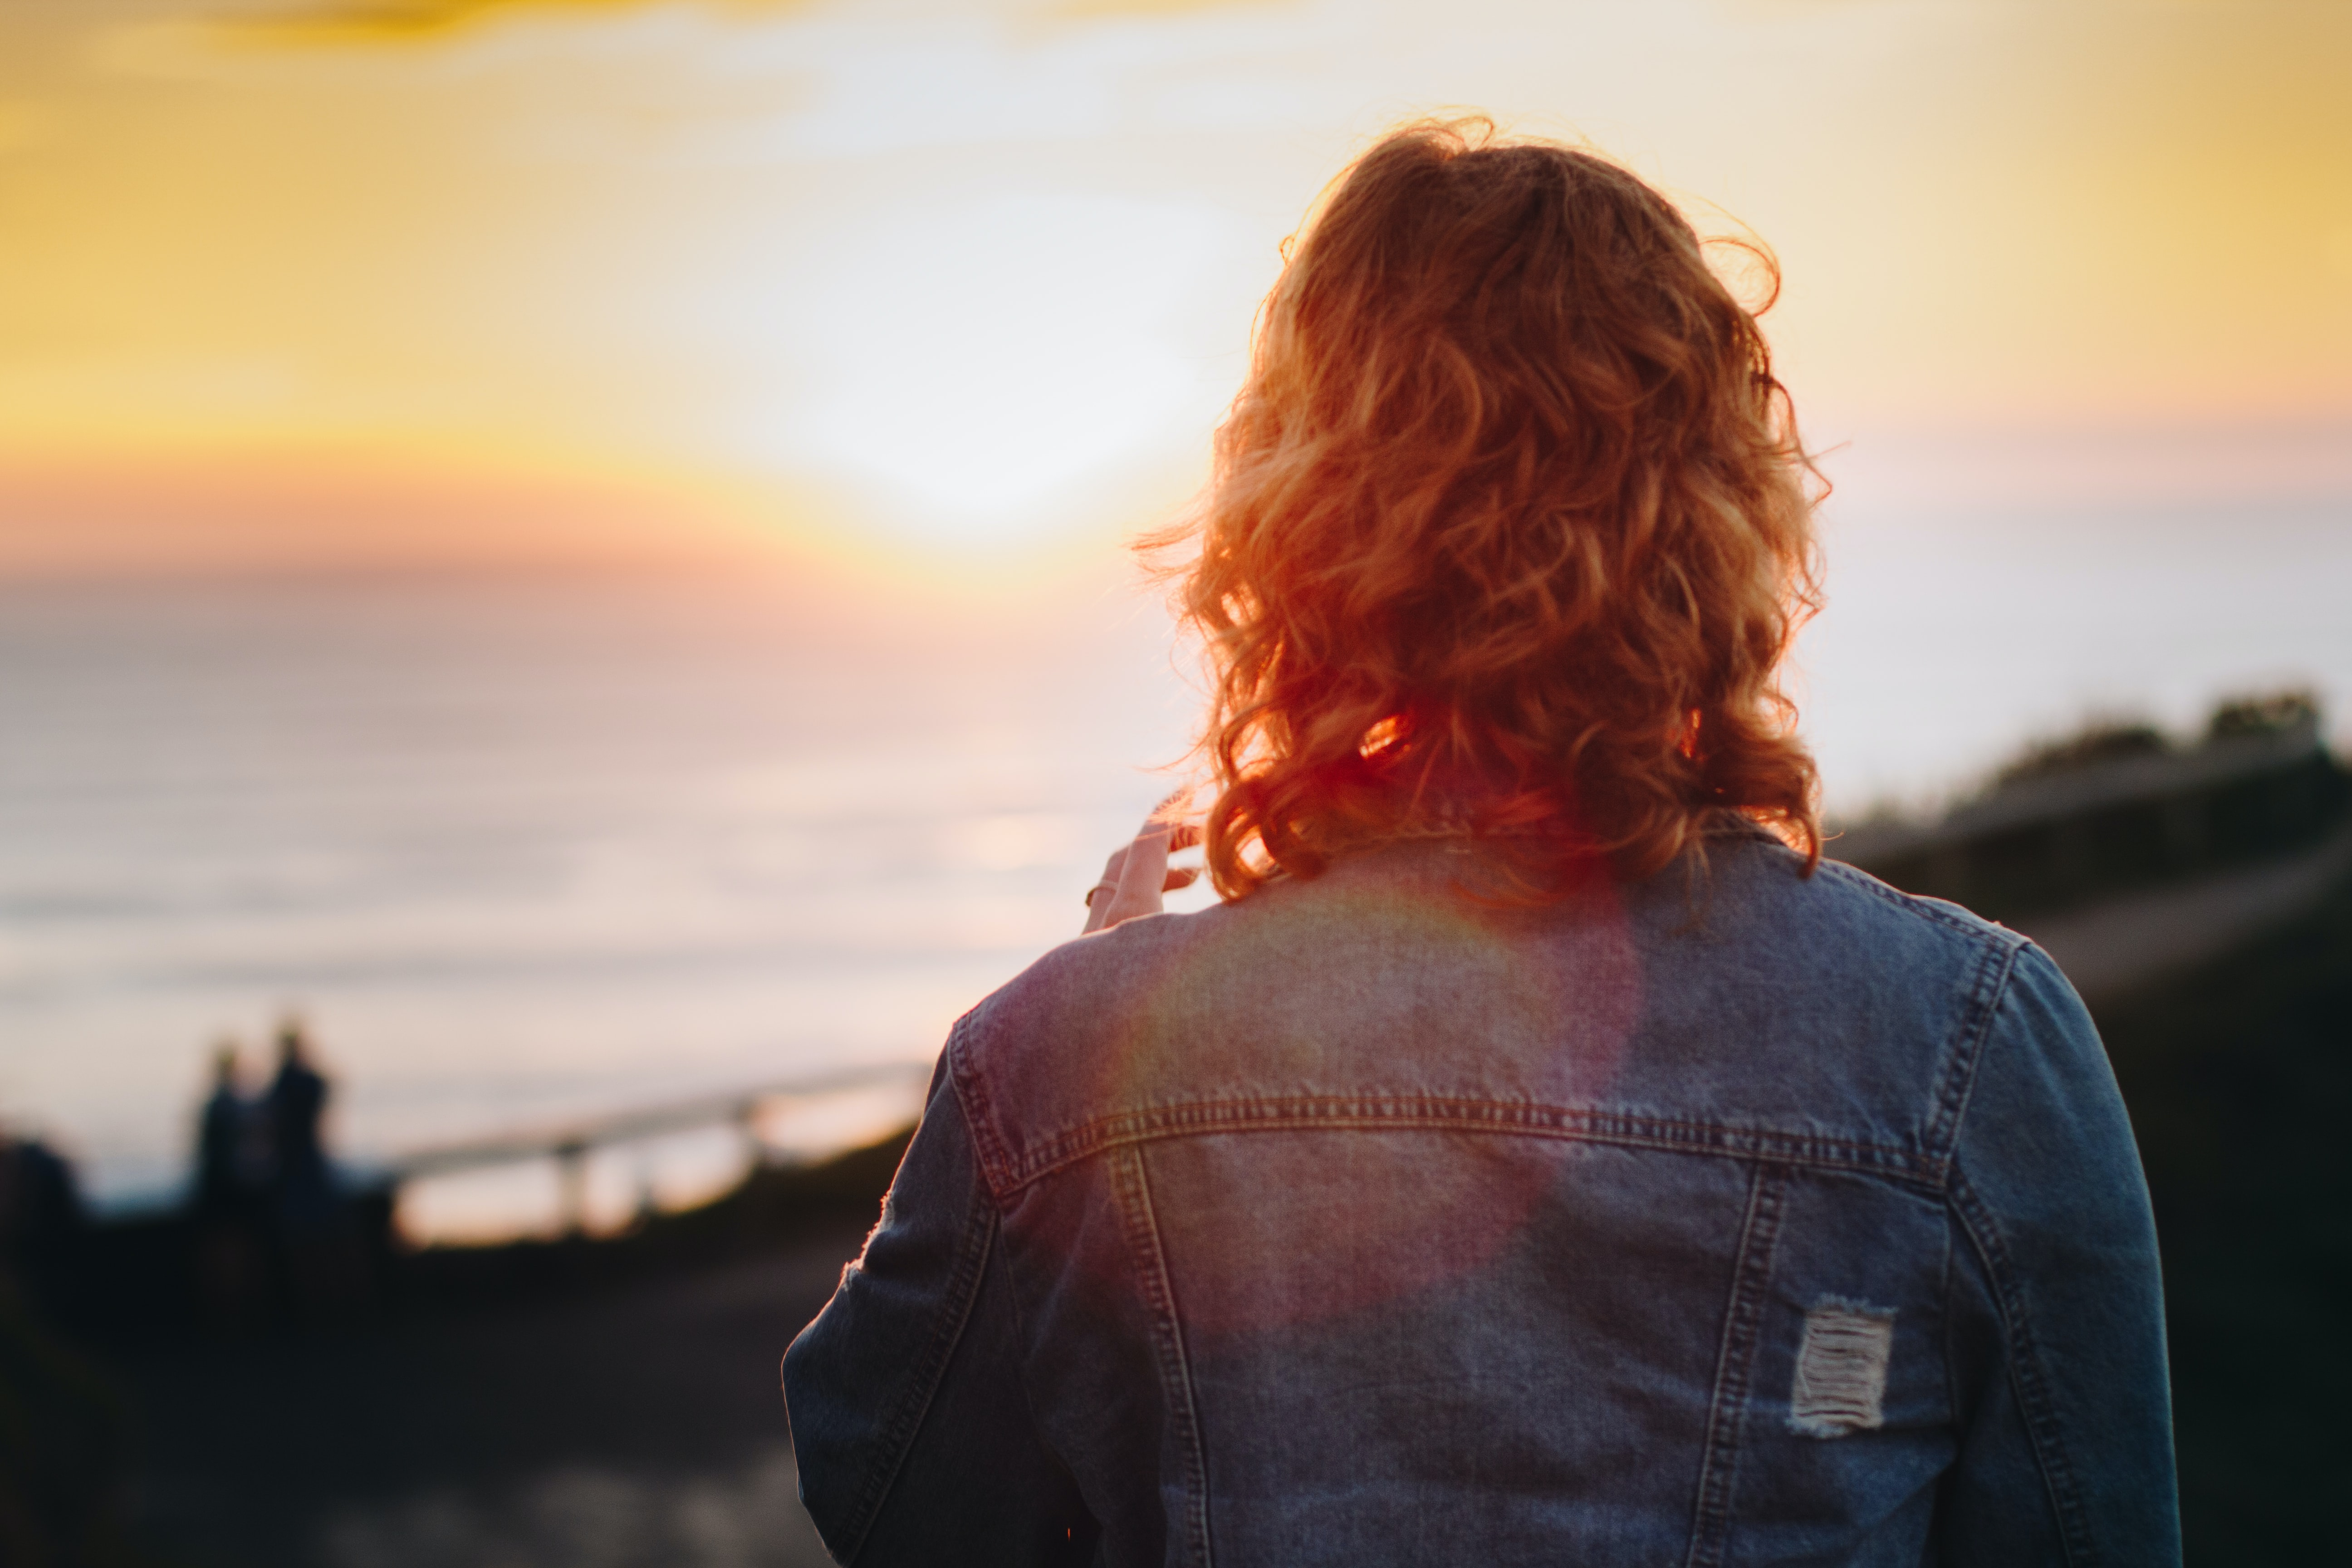 A person with long, curly hair and a denim jacket faces the obscure coastal view and sunrise-or-sunset horizon